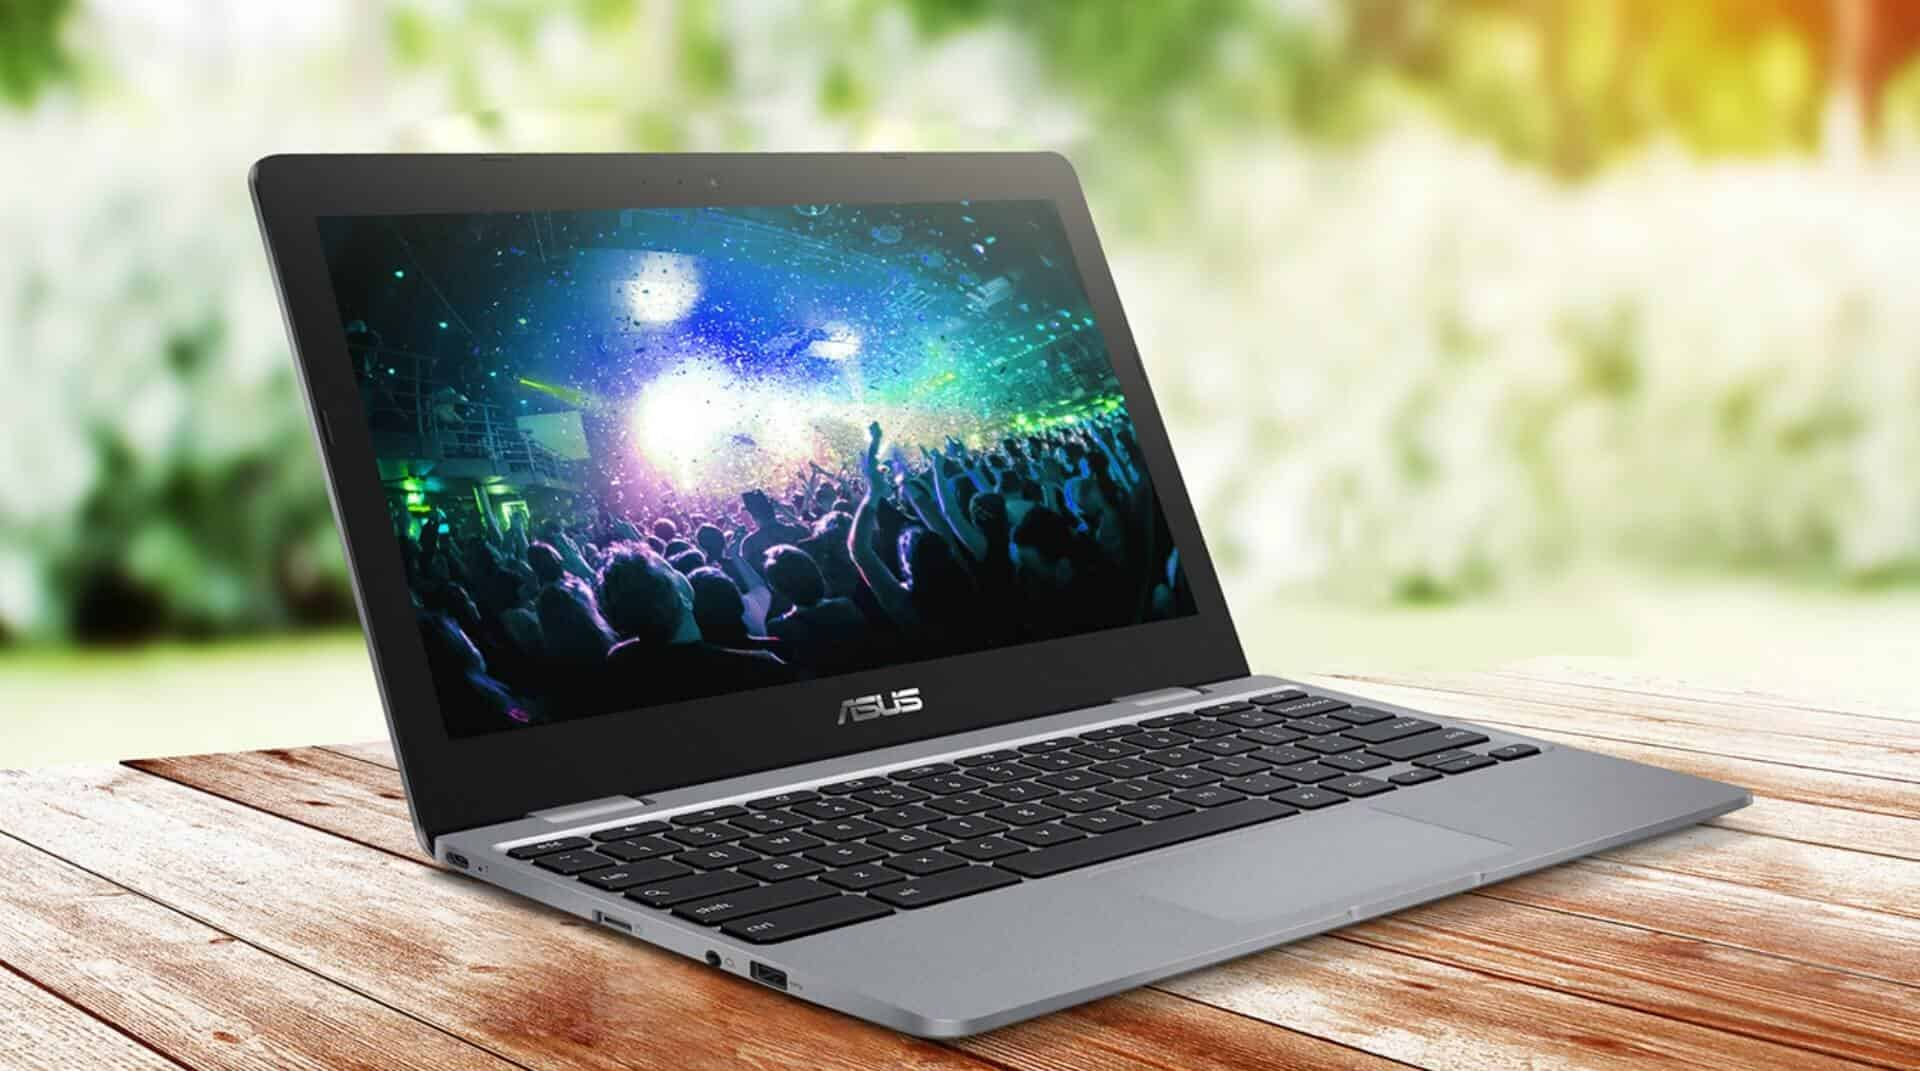 ASUS Chromebook 12 Press Image for Title